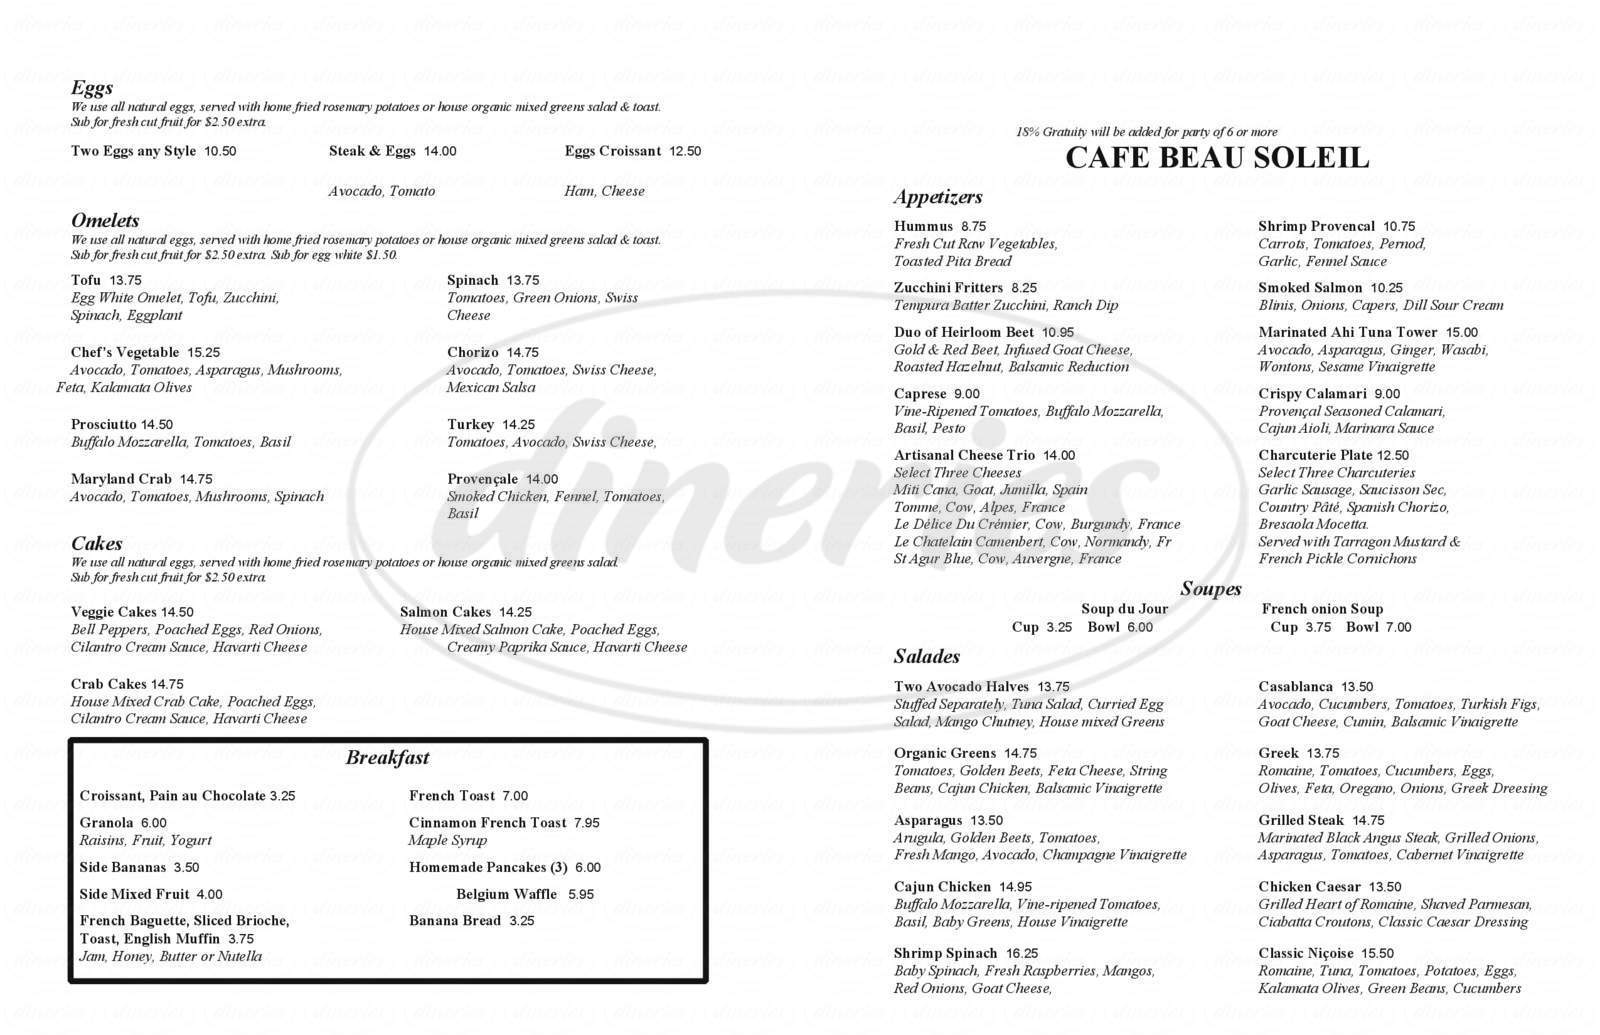 menu for Cafe Beau Soleil